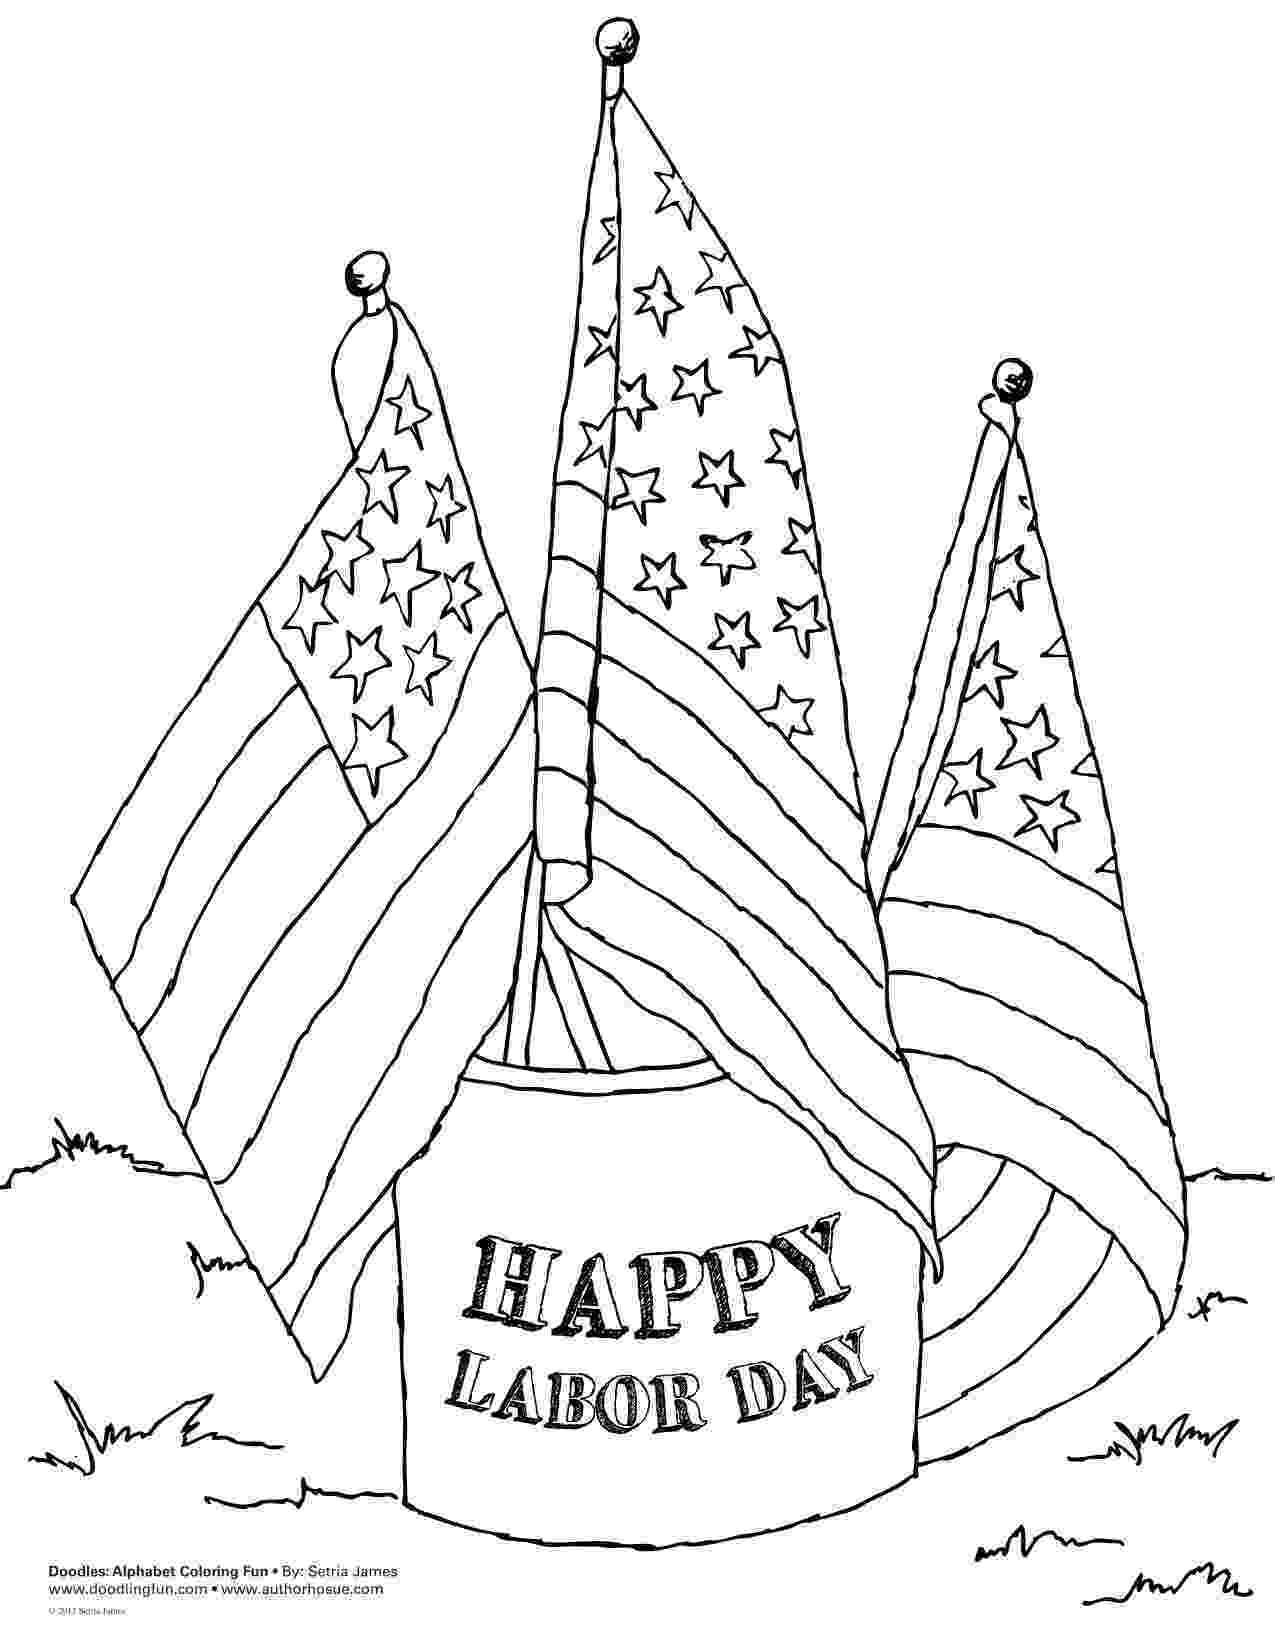 labor day coloring pages free printable labor day coloring pages to download and print for free coloring printable free labor day pages